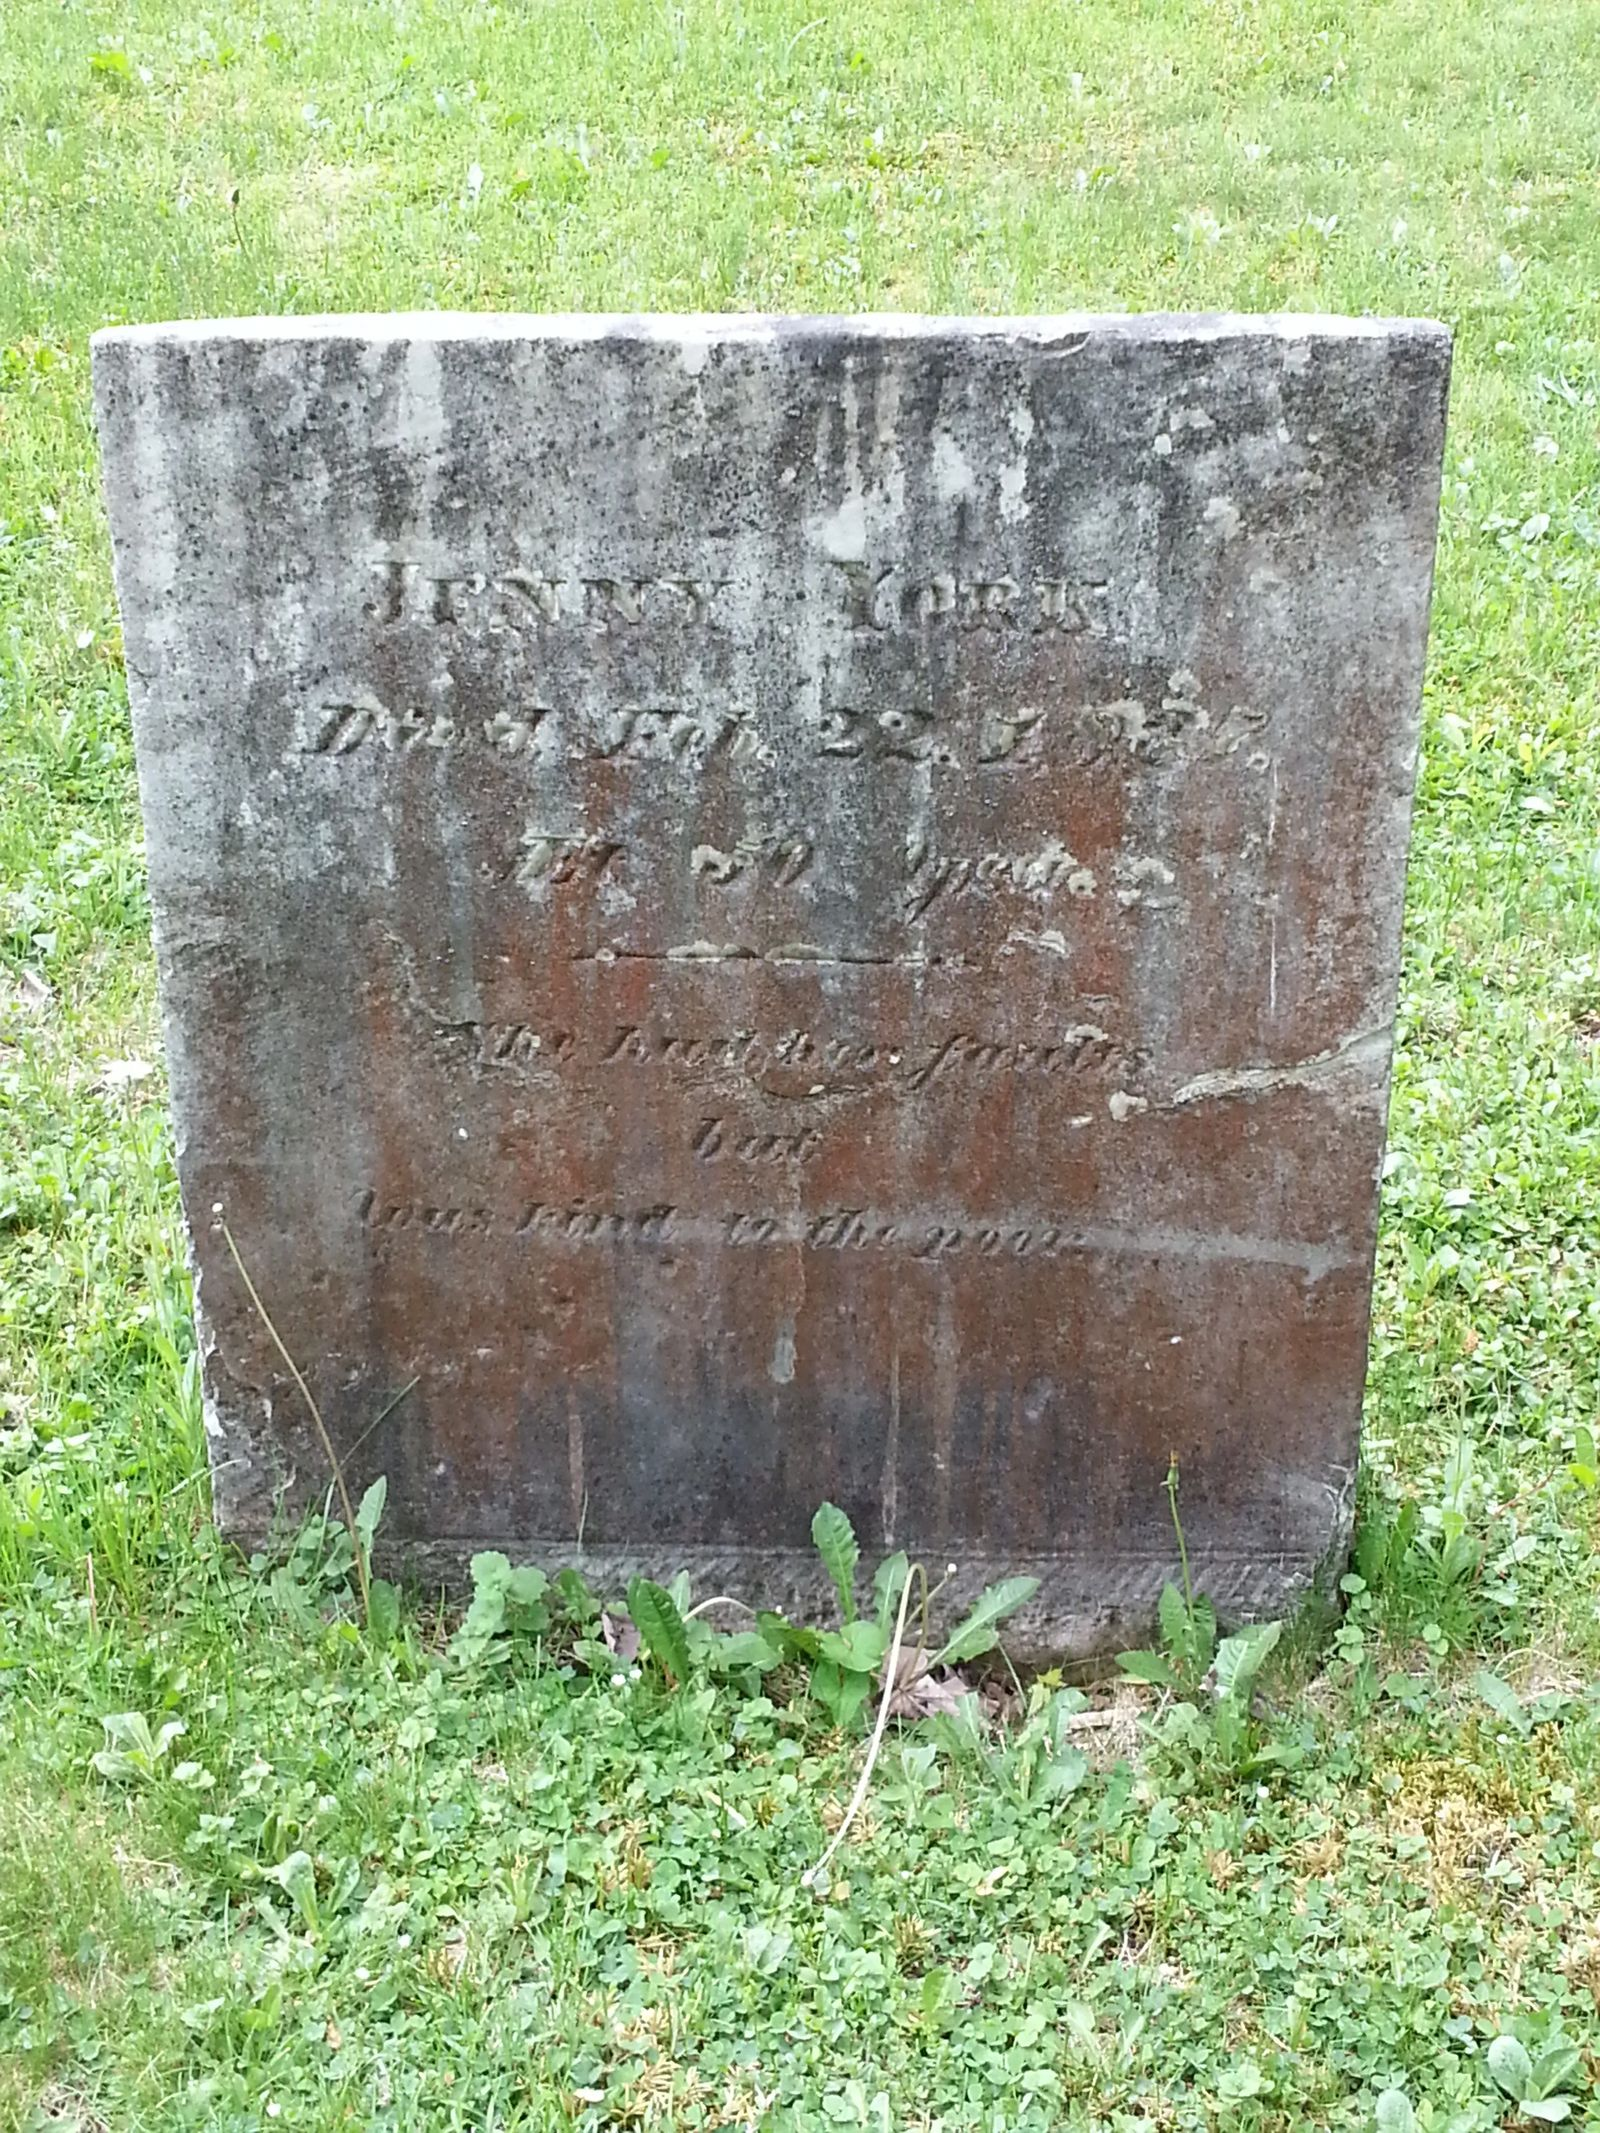 Photo of the grave sight of Jenny York in Cooperstown, New York